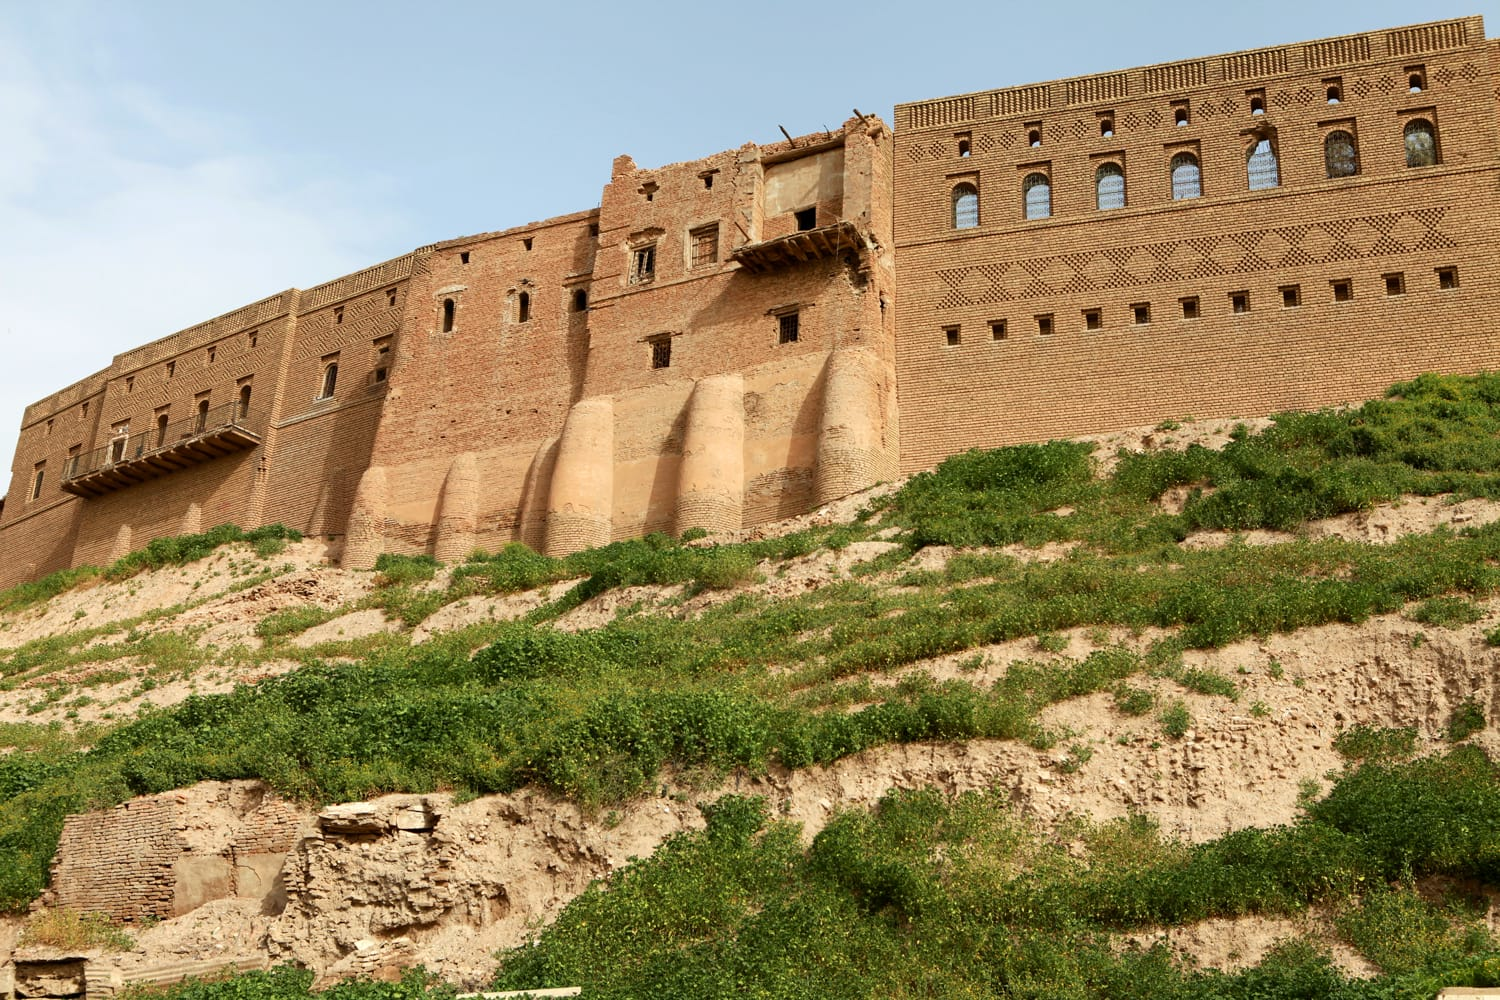 The Castle of Erbil, Iraq.